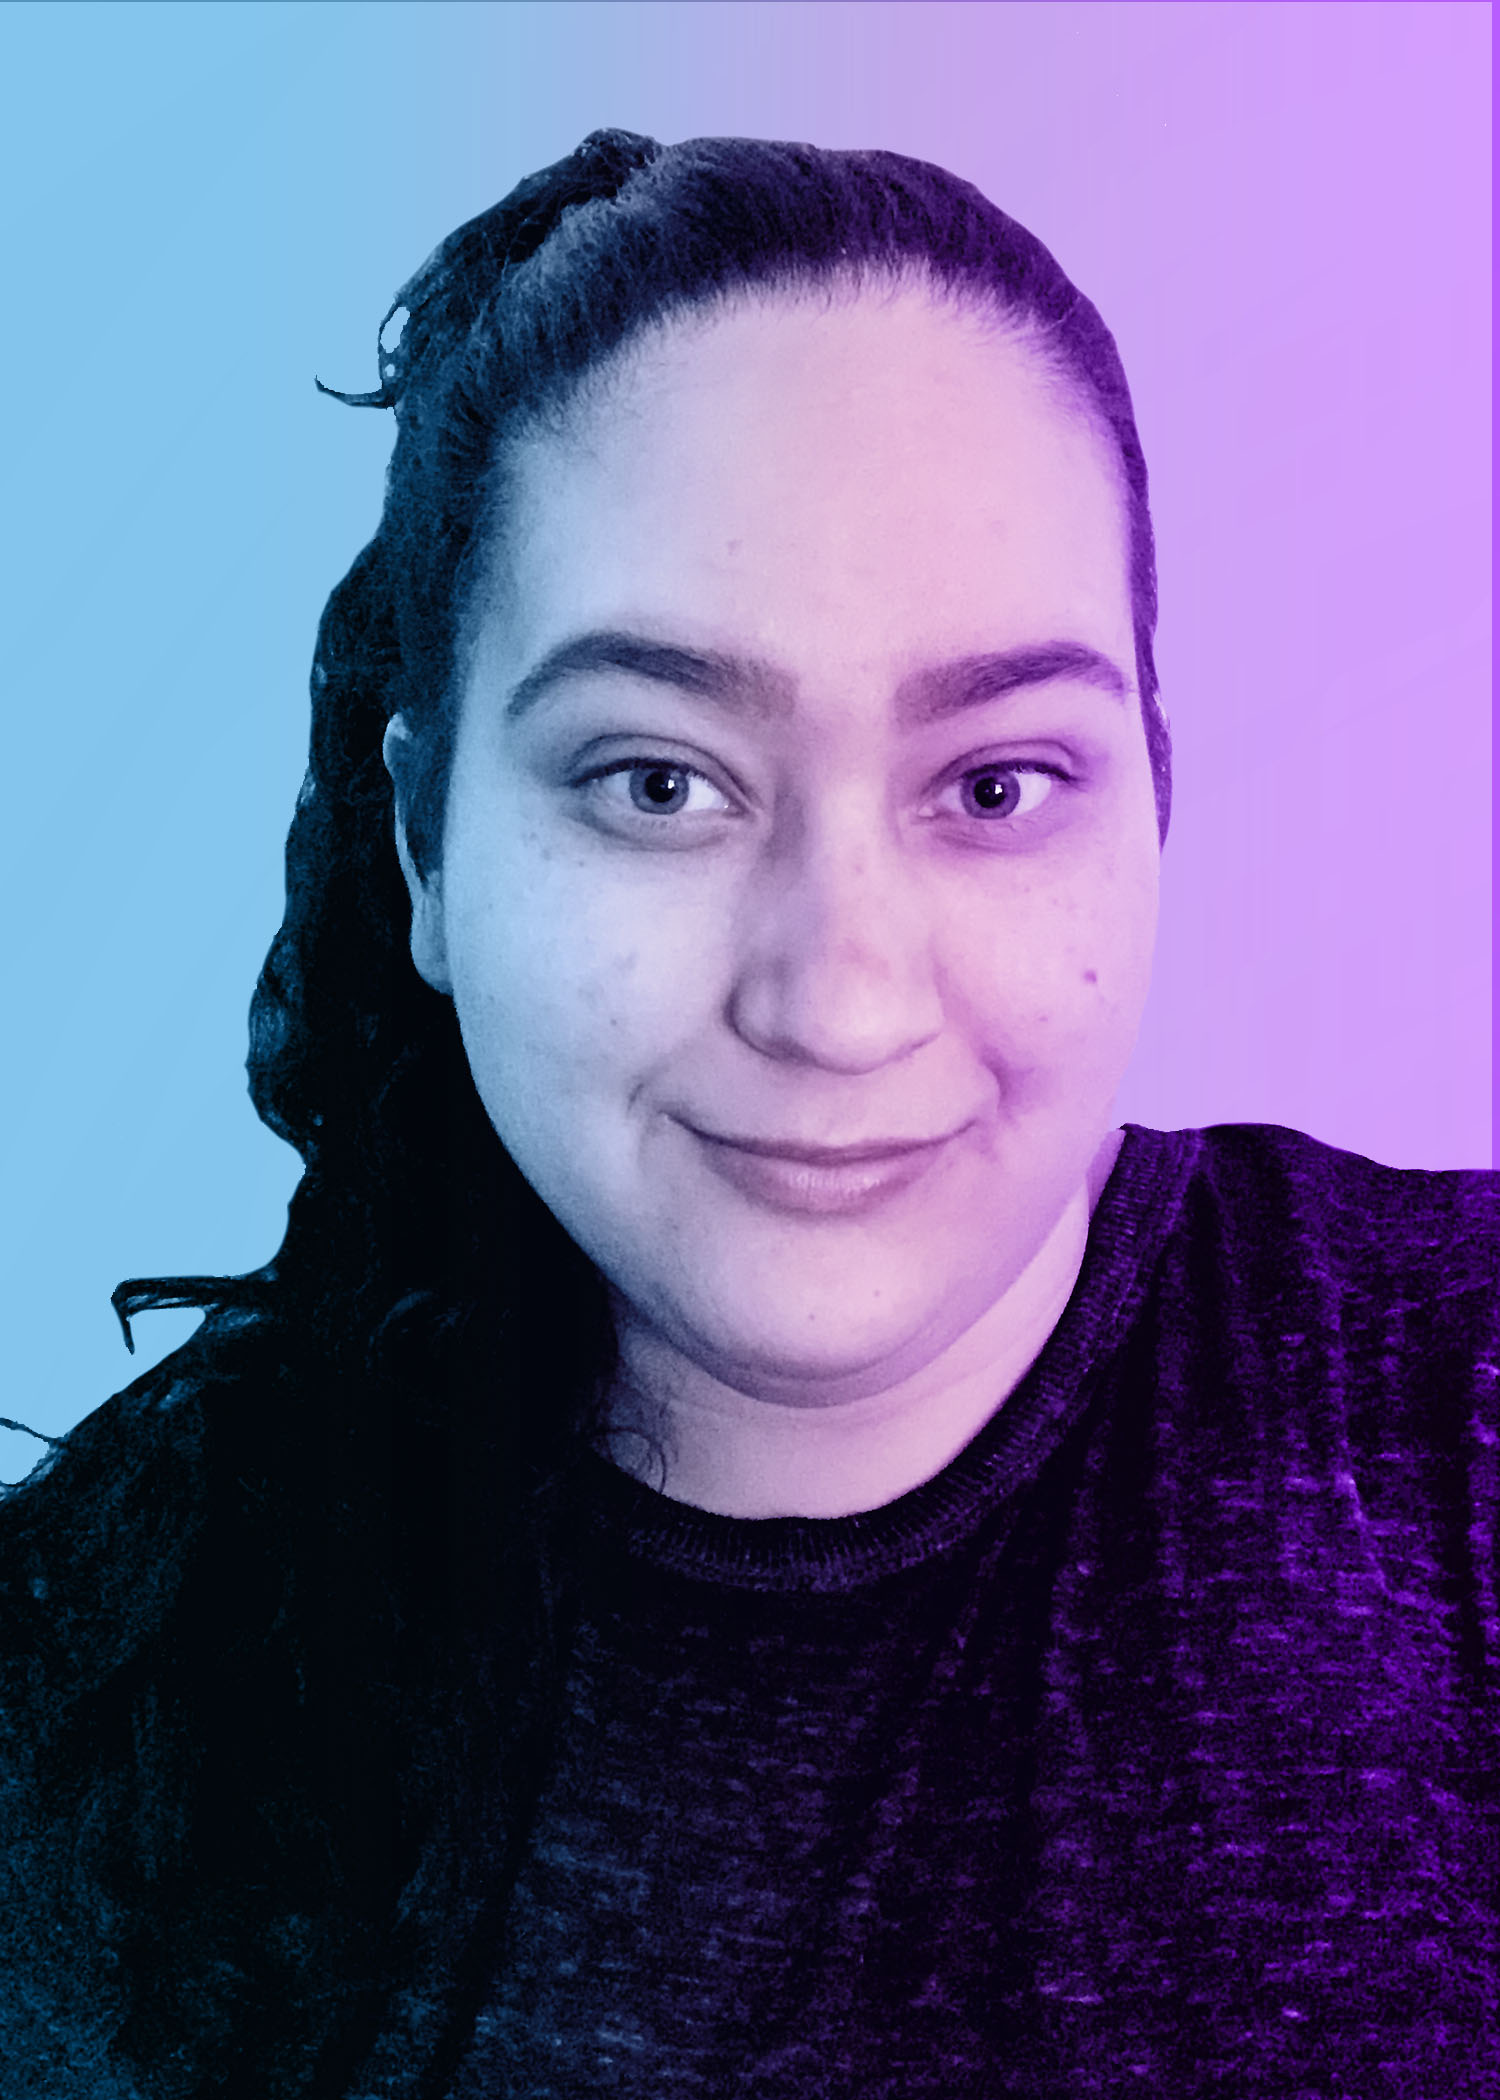 photo of female college student with dark, wavy hair. blue and purple overlay on photo.